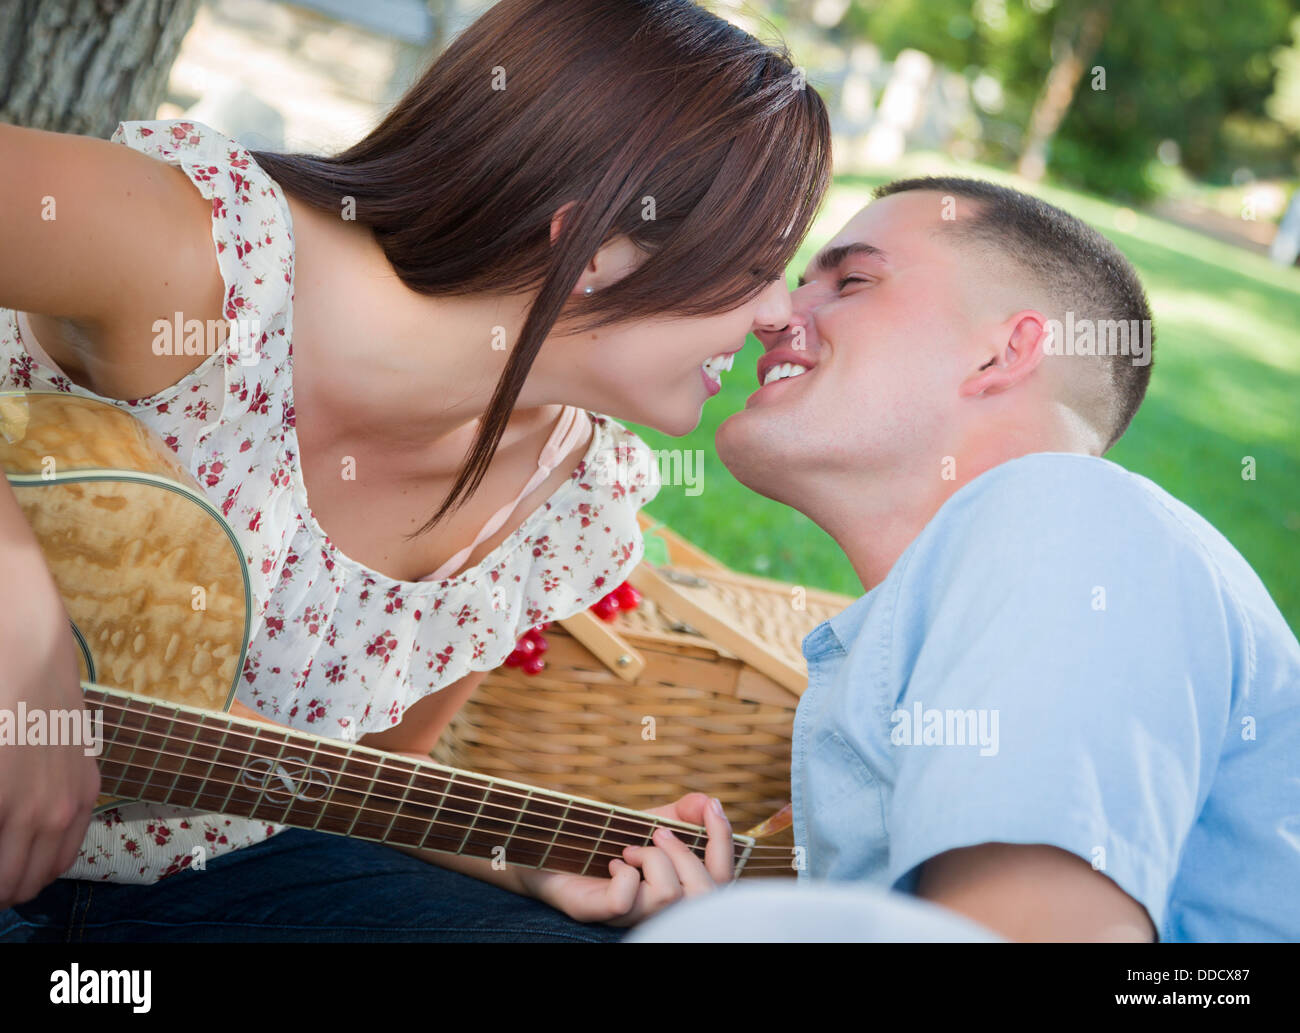 Affectionate Mixed Race Couple With Guitar Kissing In The